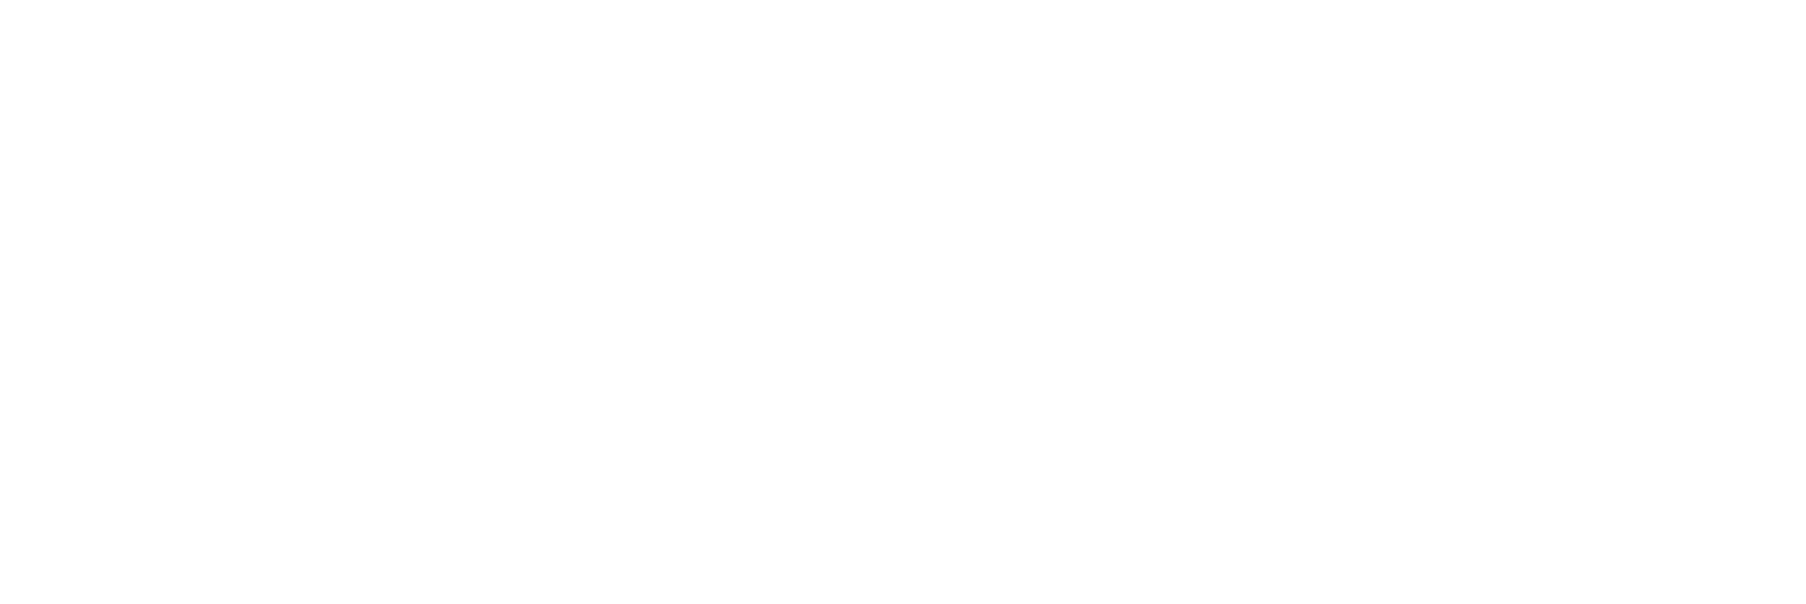 cropped hot world news logo